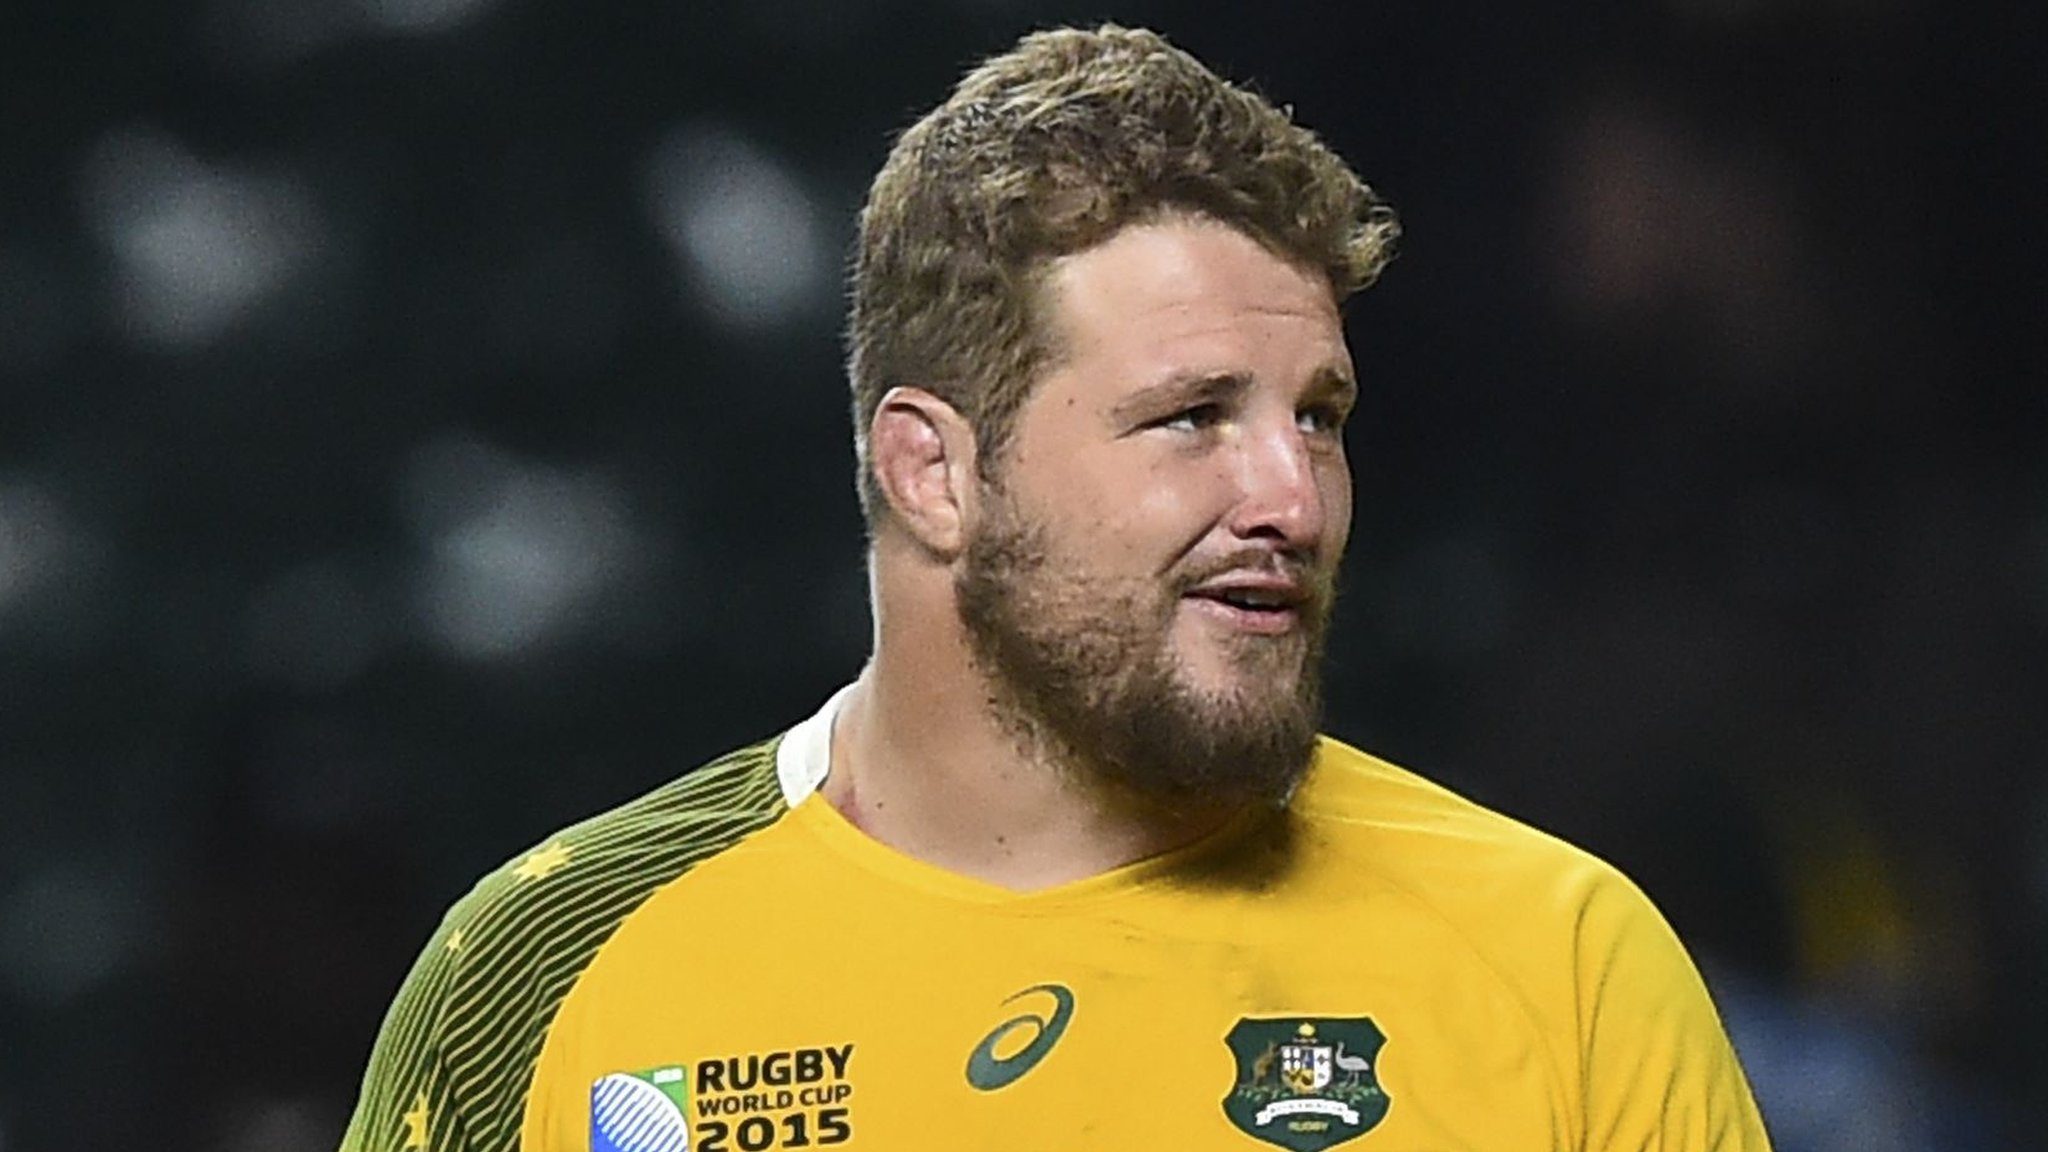 Australia prop Slipper banned after failed drugs test